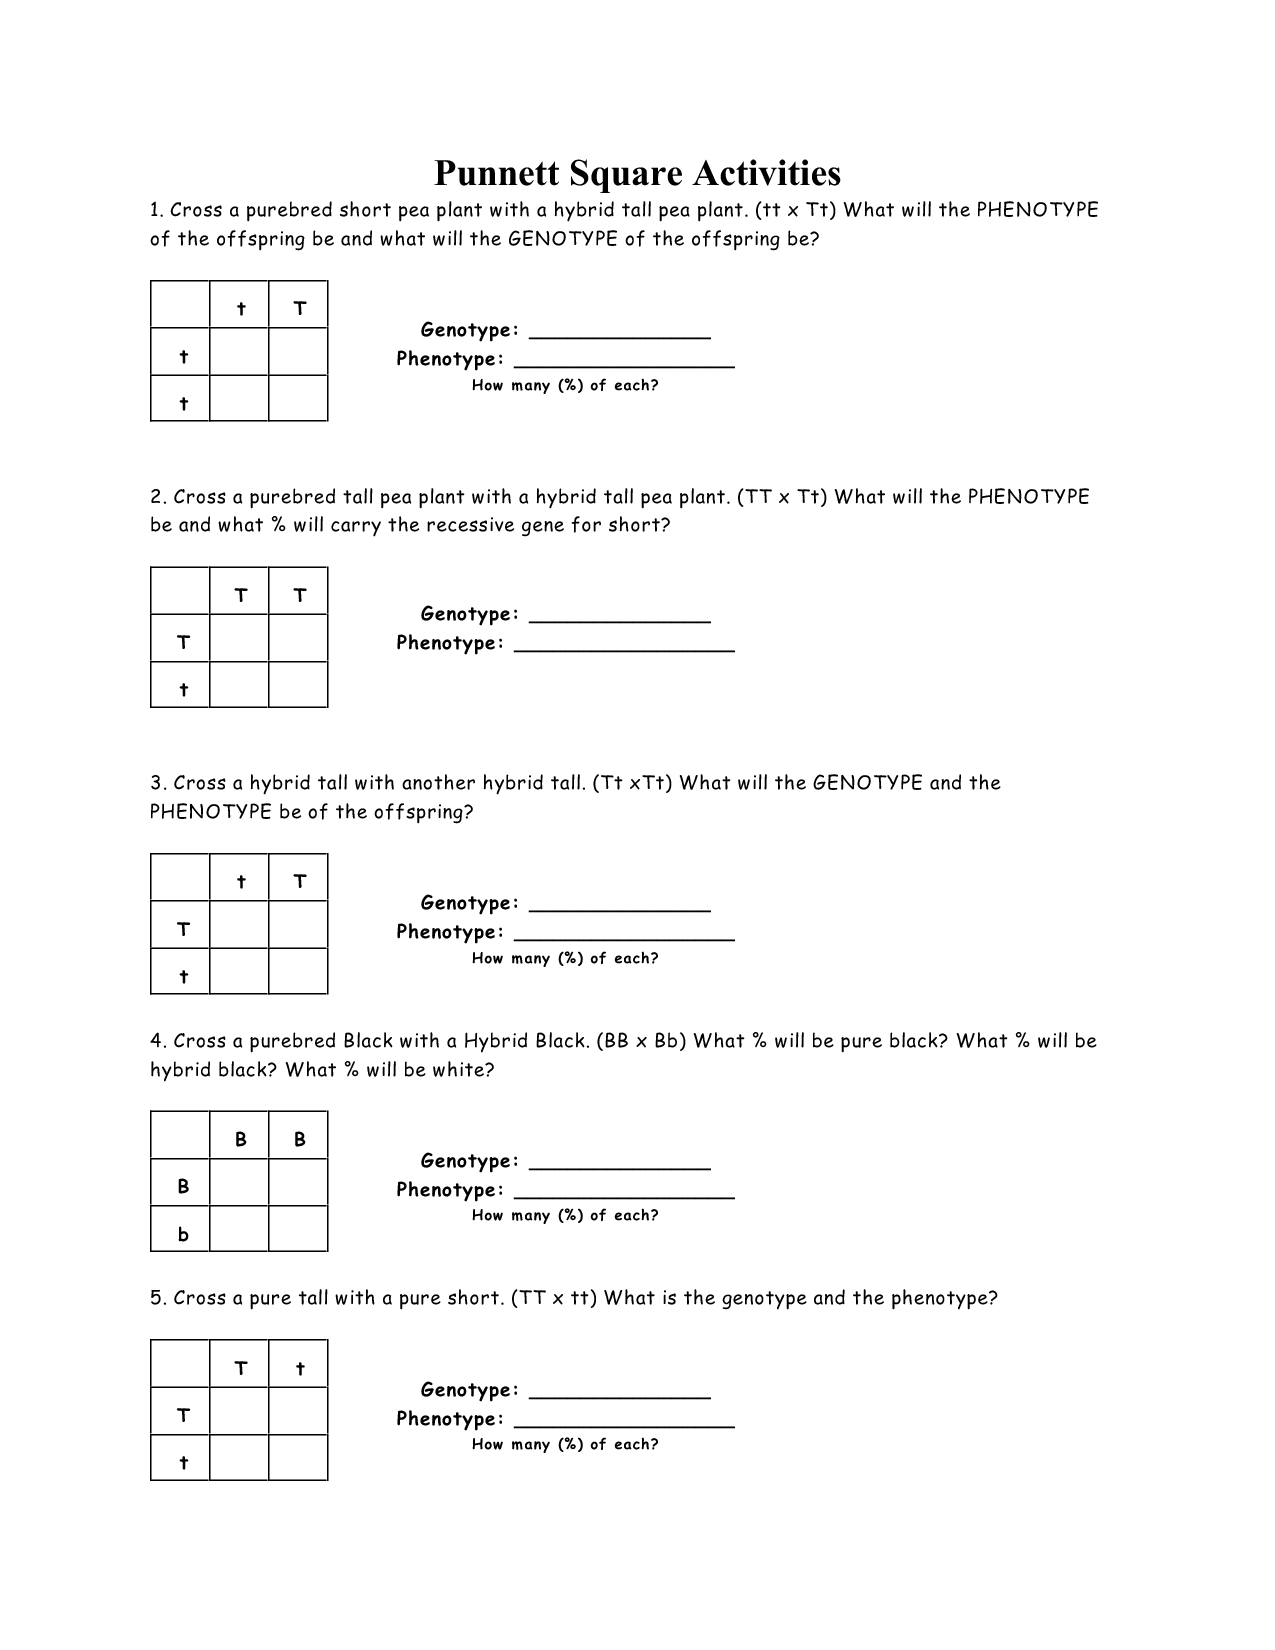 Pea Plant Punnett Square Worksheet Answers In